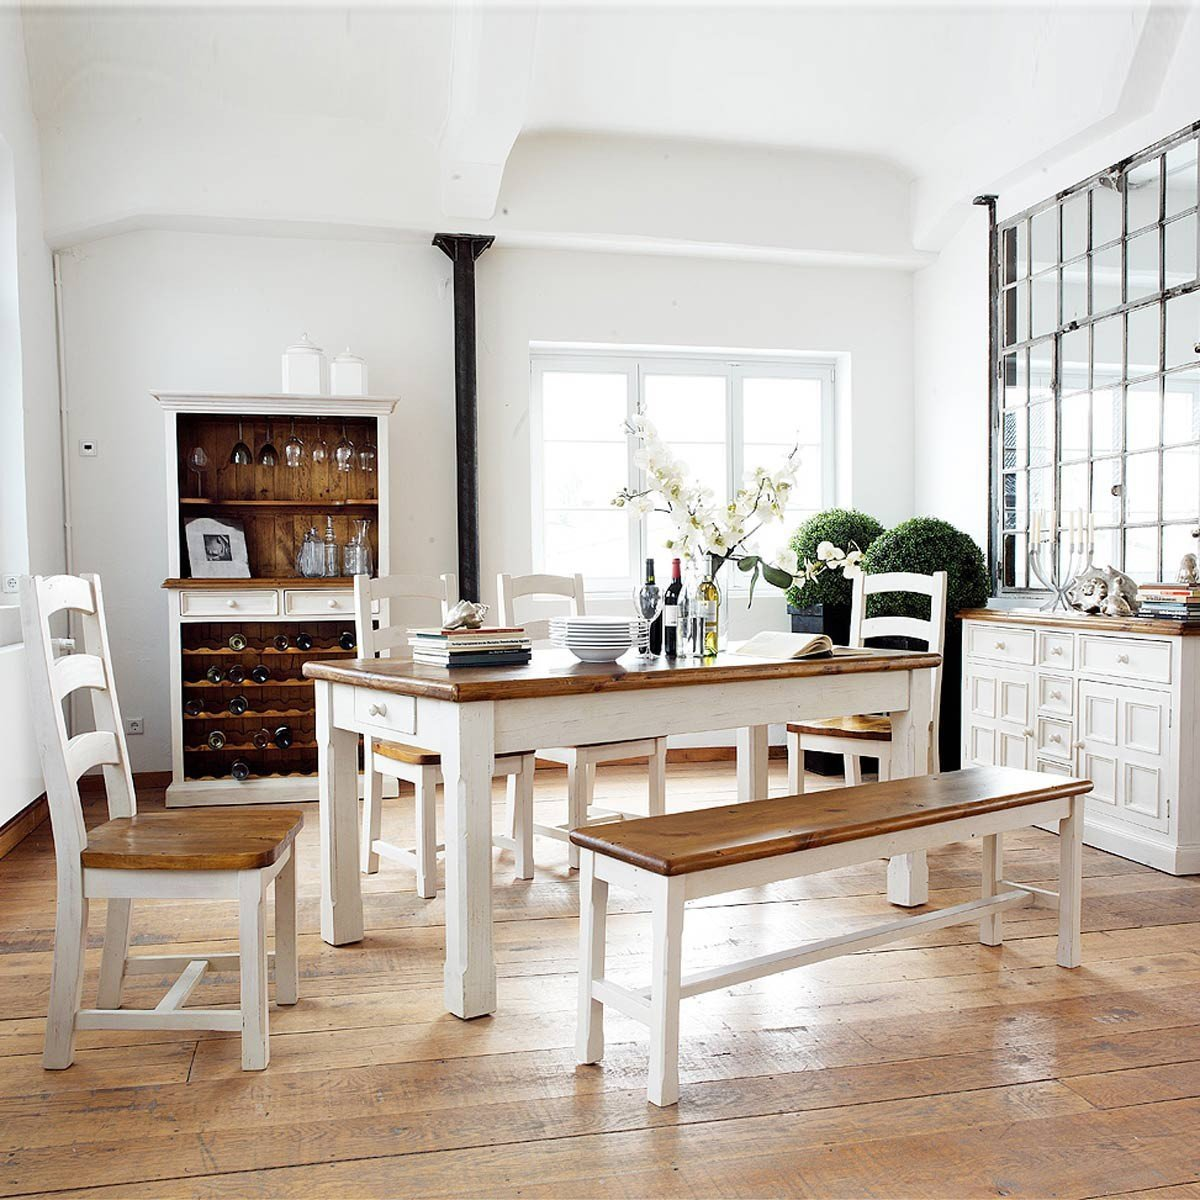 Common Types Of Dining Tables For Apartments